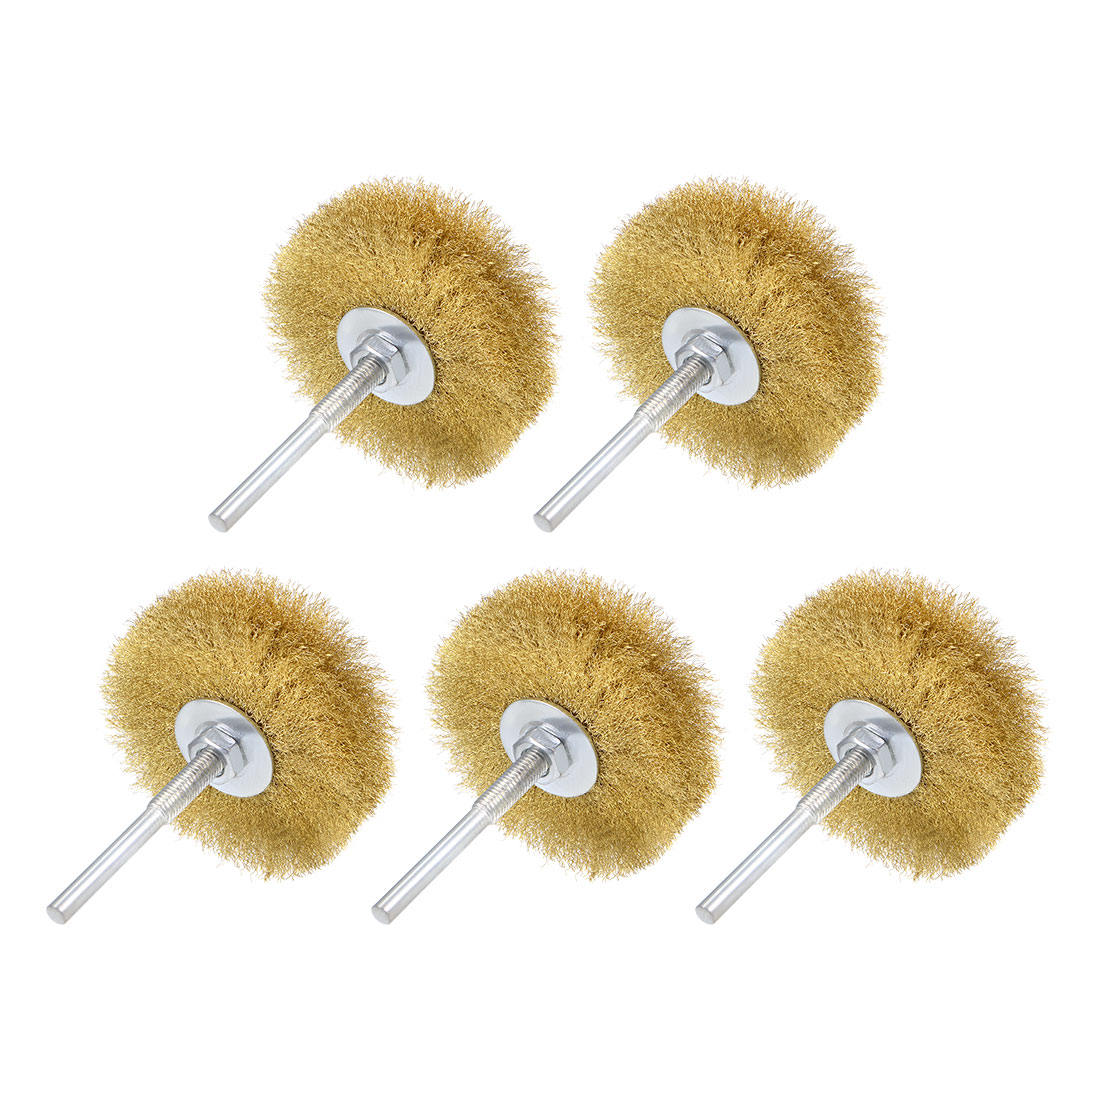 80mm Wire Wheel Brush Bench Brass Plated Crimped Steel 1/4 Inch Shank 5pcs